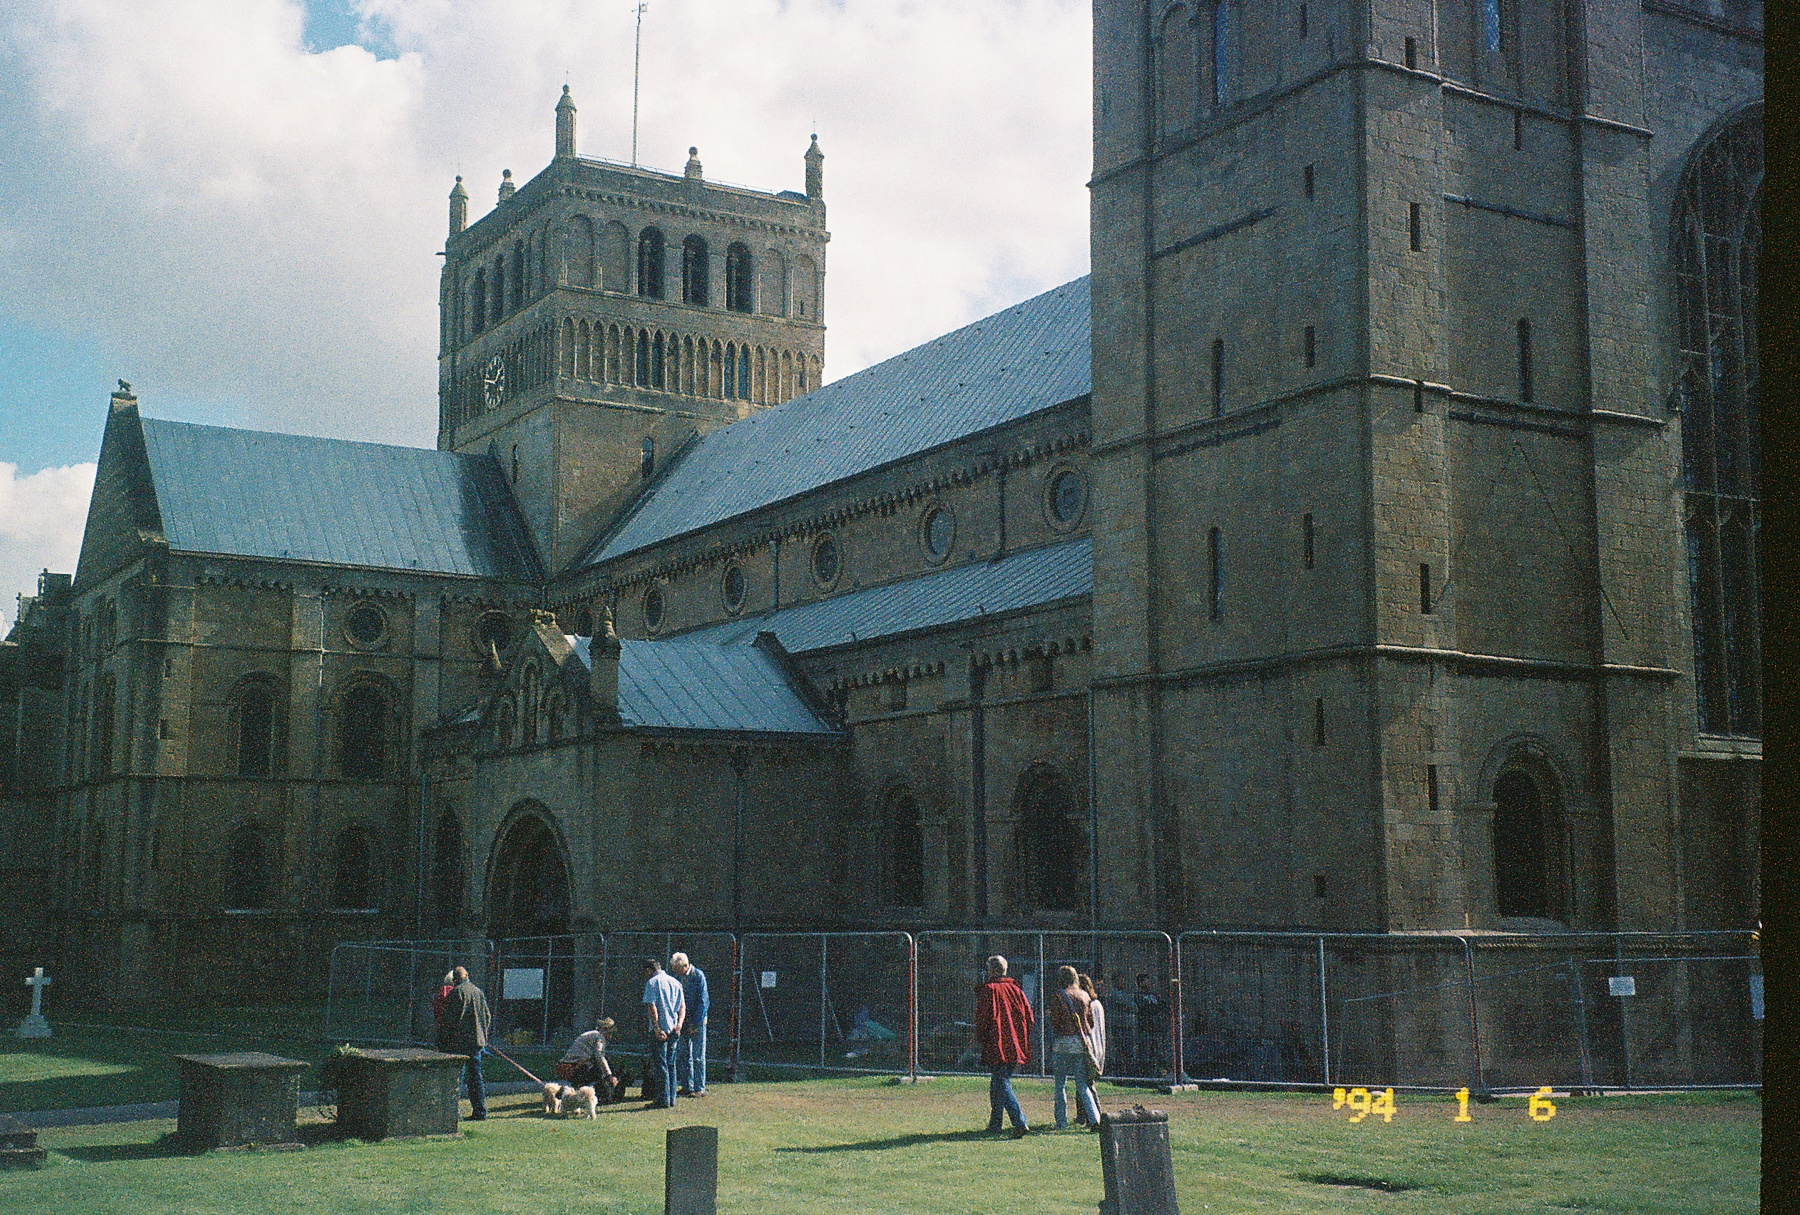 Picture of Southwell Minster. Taken by my mom.